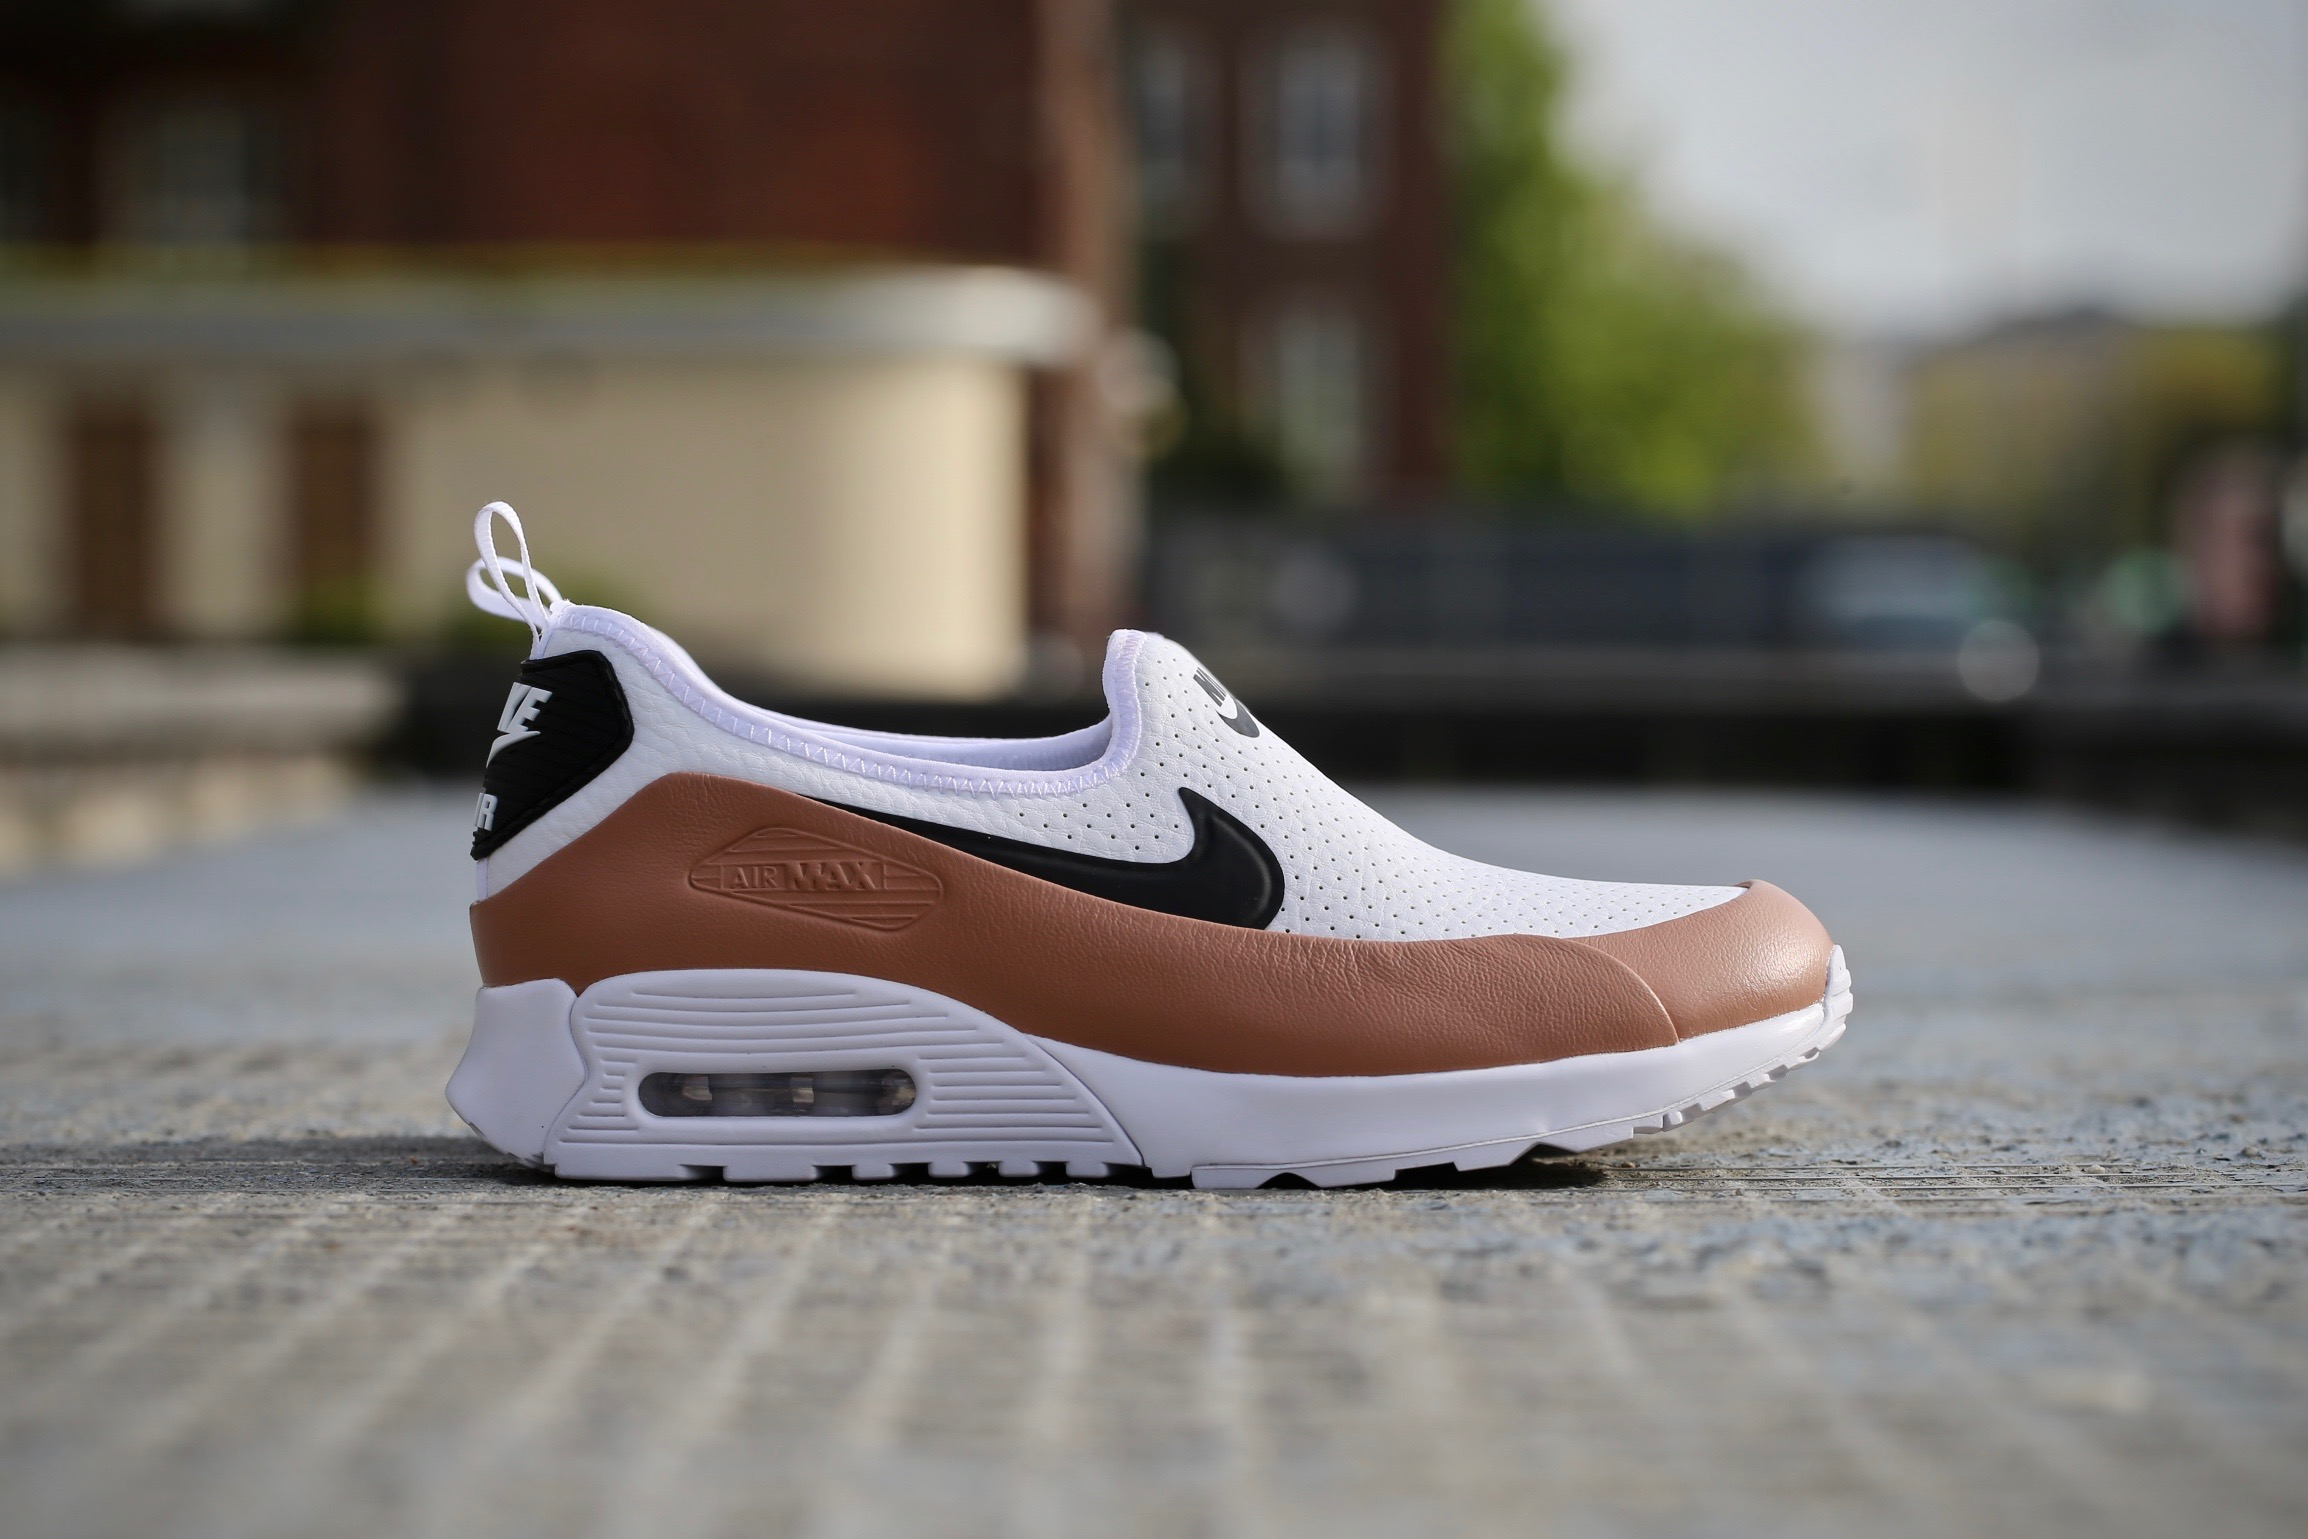 new arrival 8f482 96357 Nike Wmns Air Max 90 Ultra 2.0 EZ – White   Black   Dusted Clay – STASP